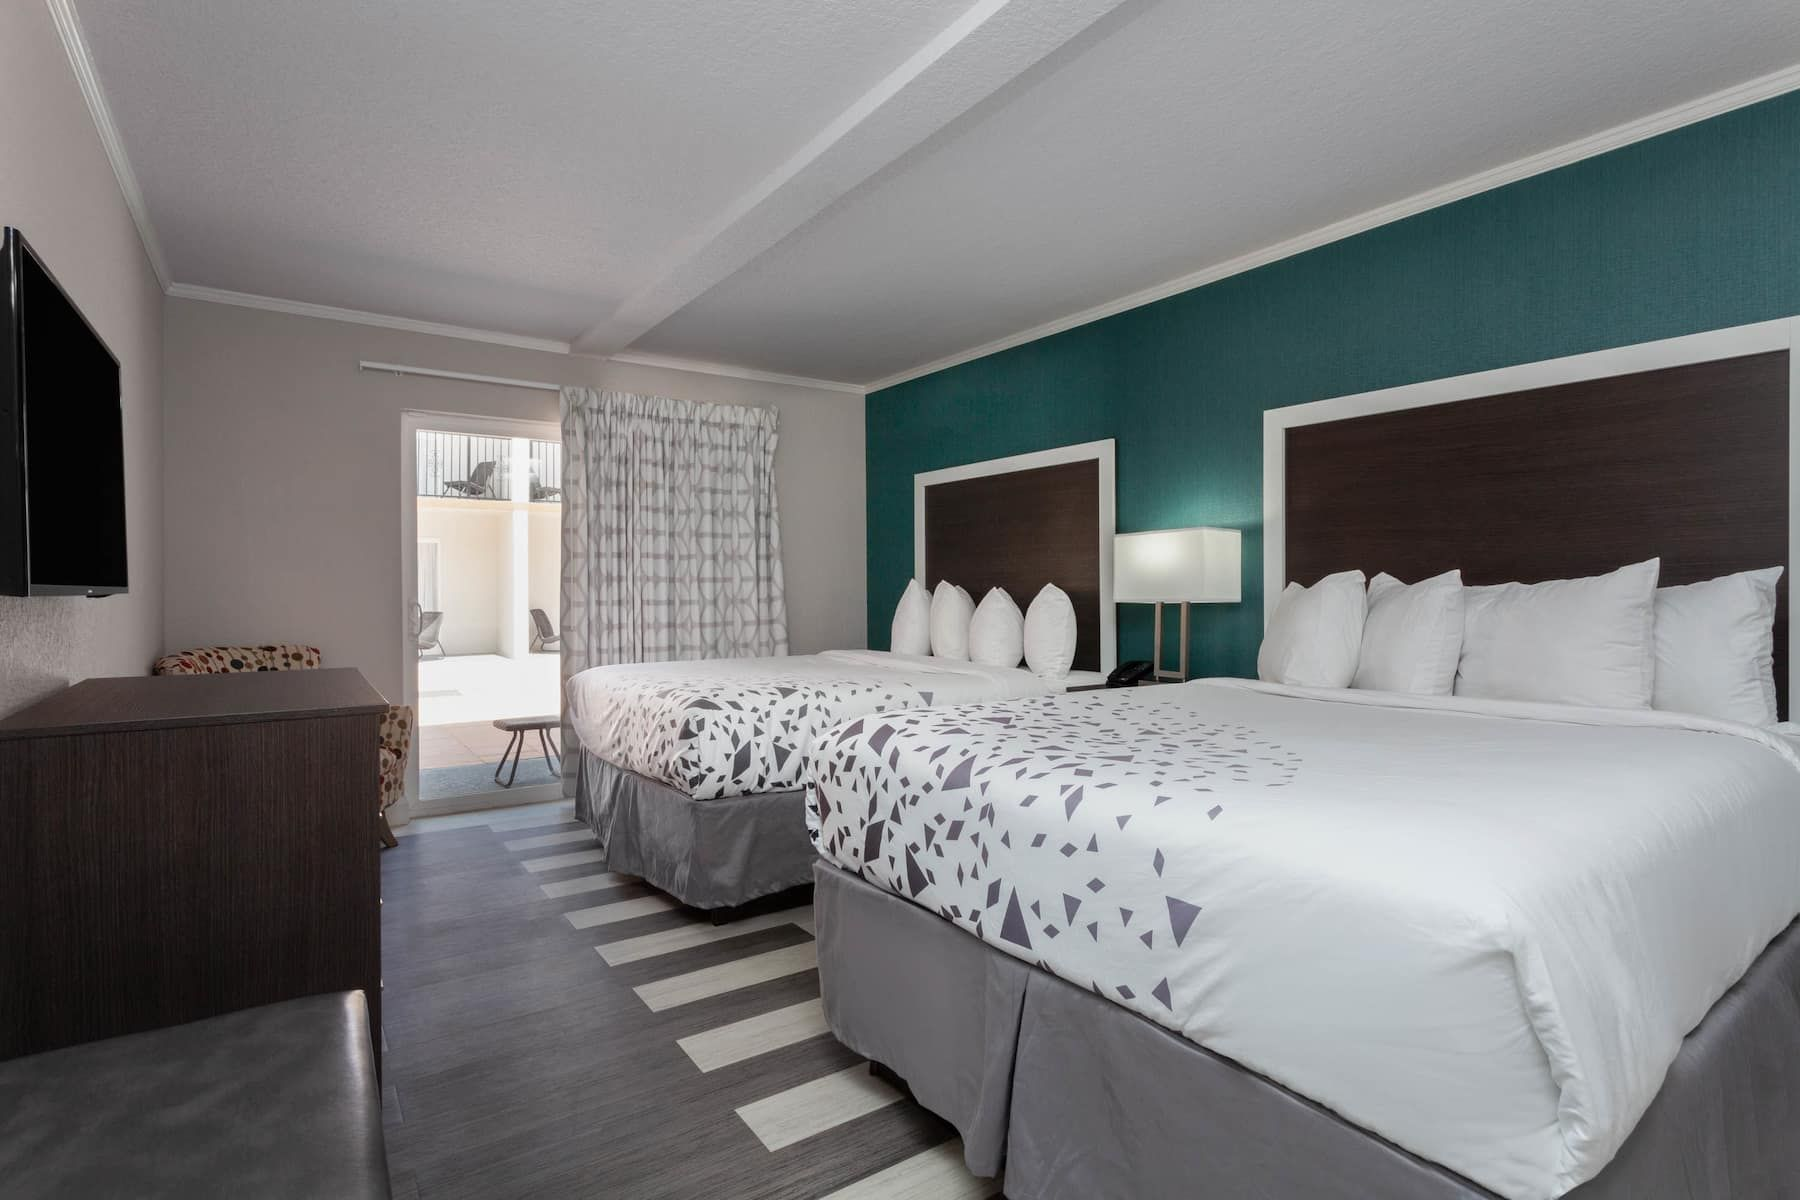 Image by Hawthorn Suites by Wyndham Kis on Our Hotel